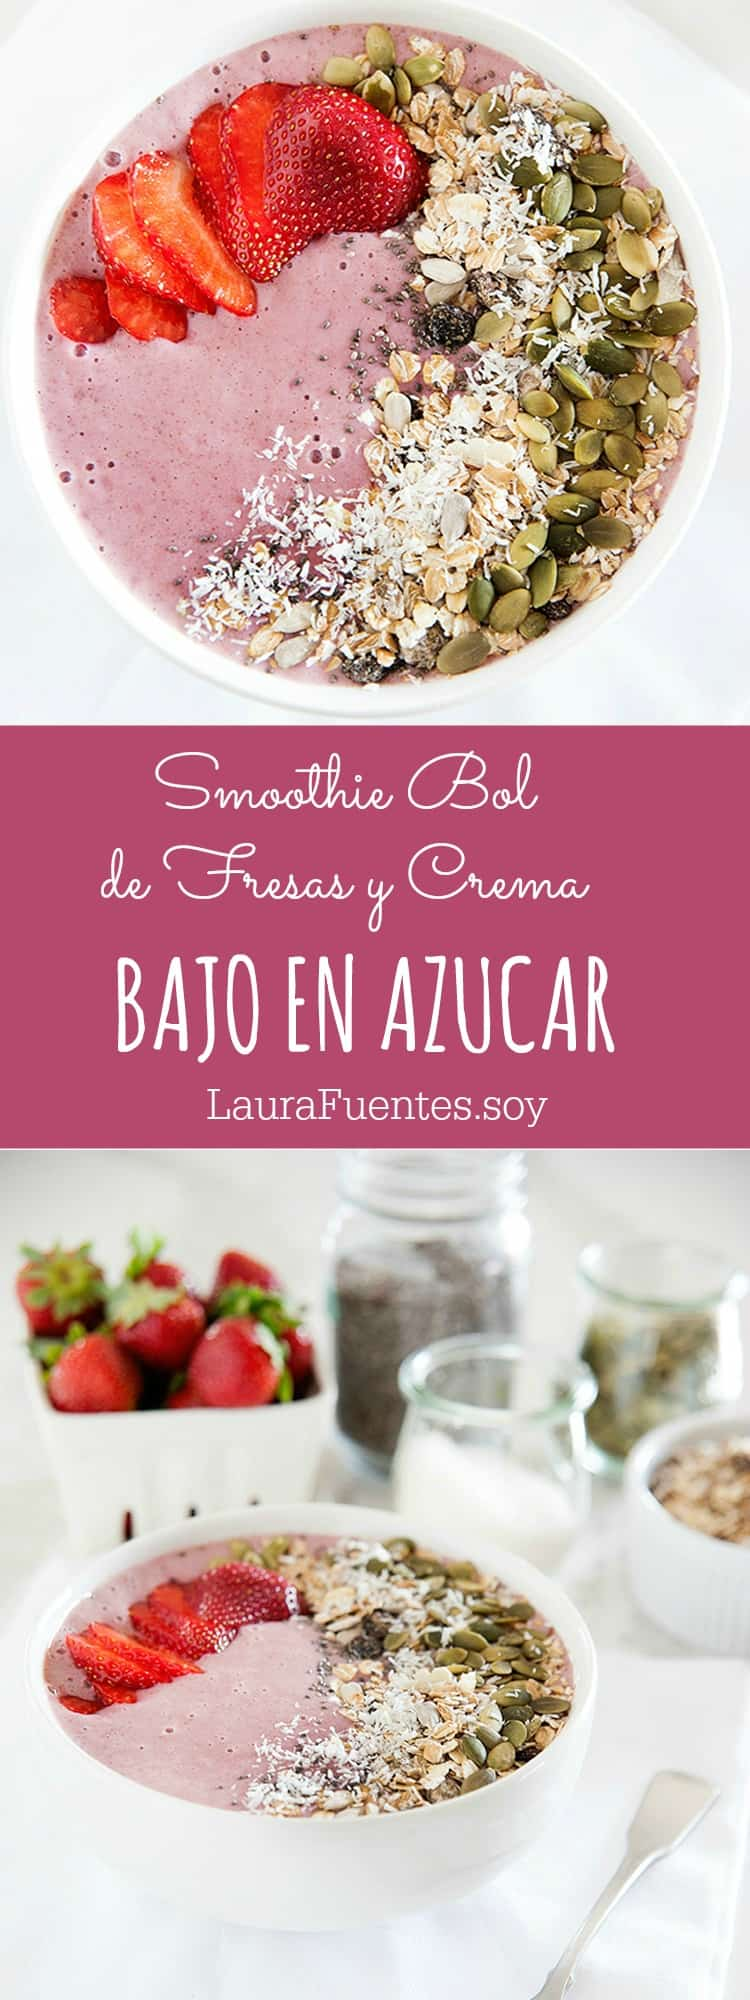 strawberry_cream_smoothie_bowl_spanish